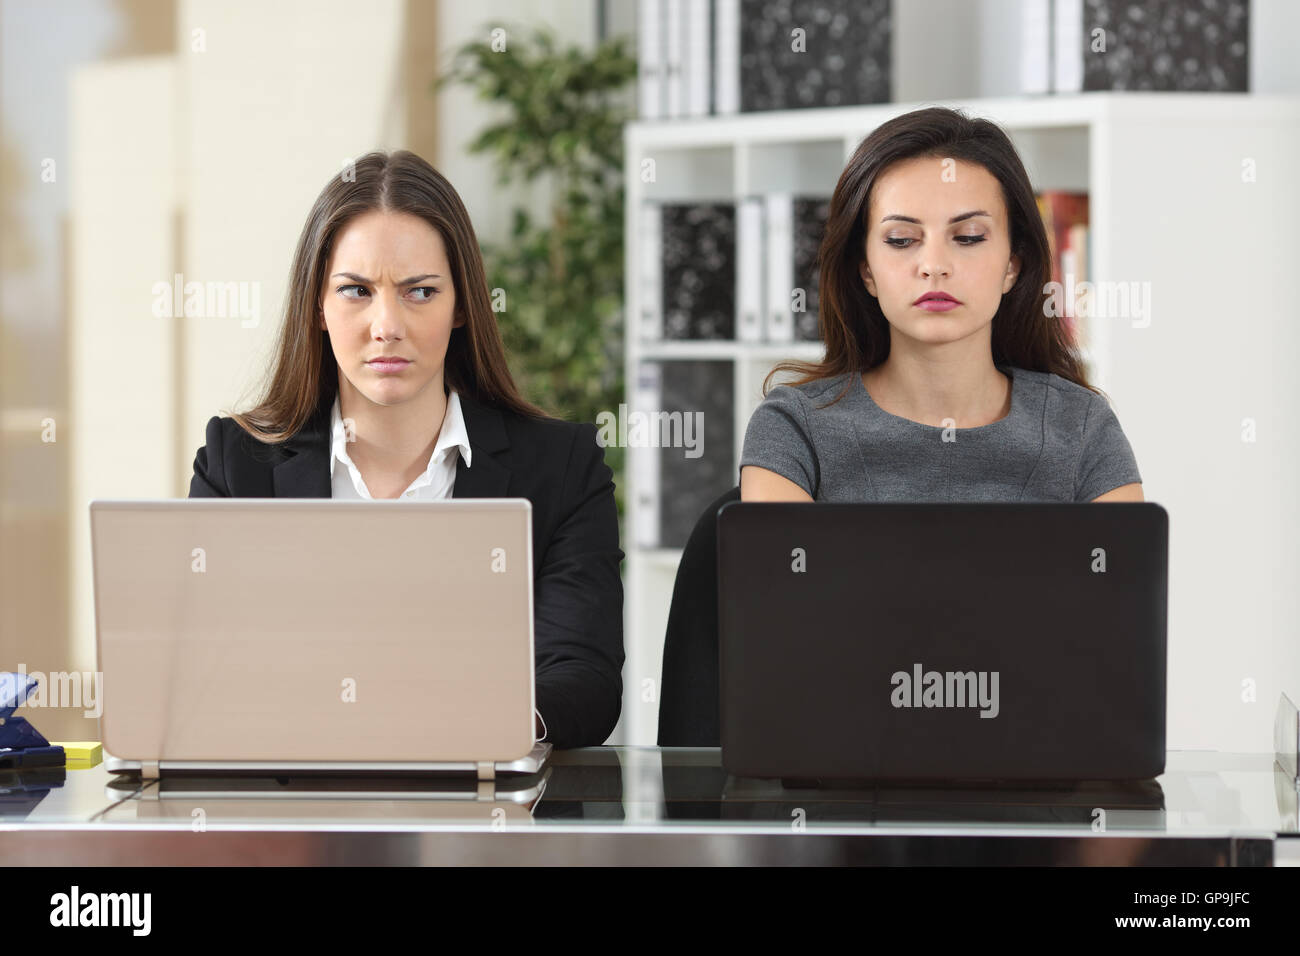 Front view of two angry businesswomen looking each other with hate working with laptops at office - Stock Image